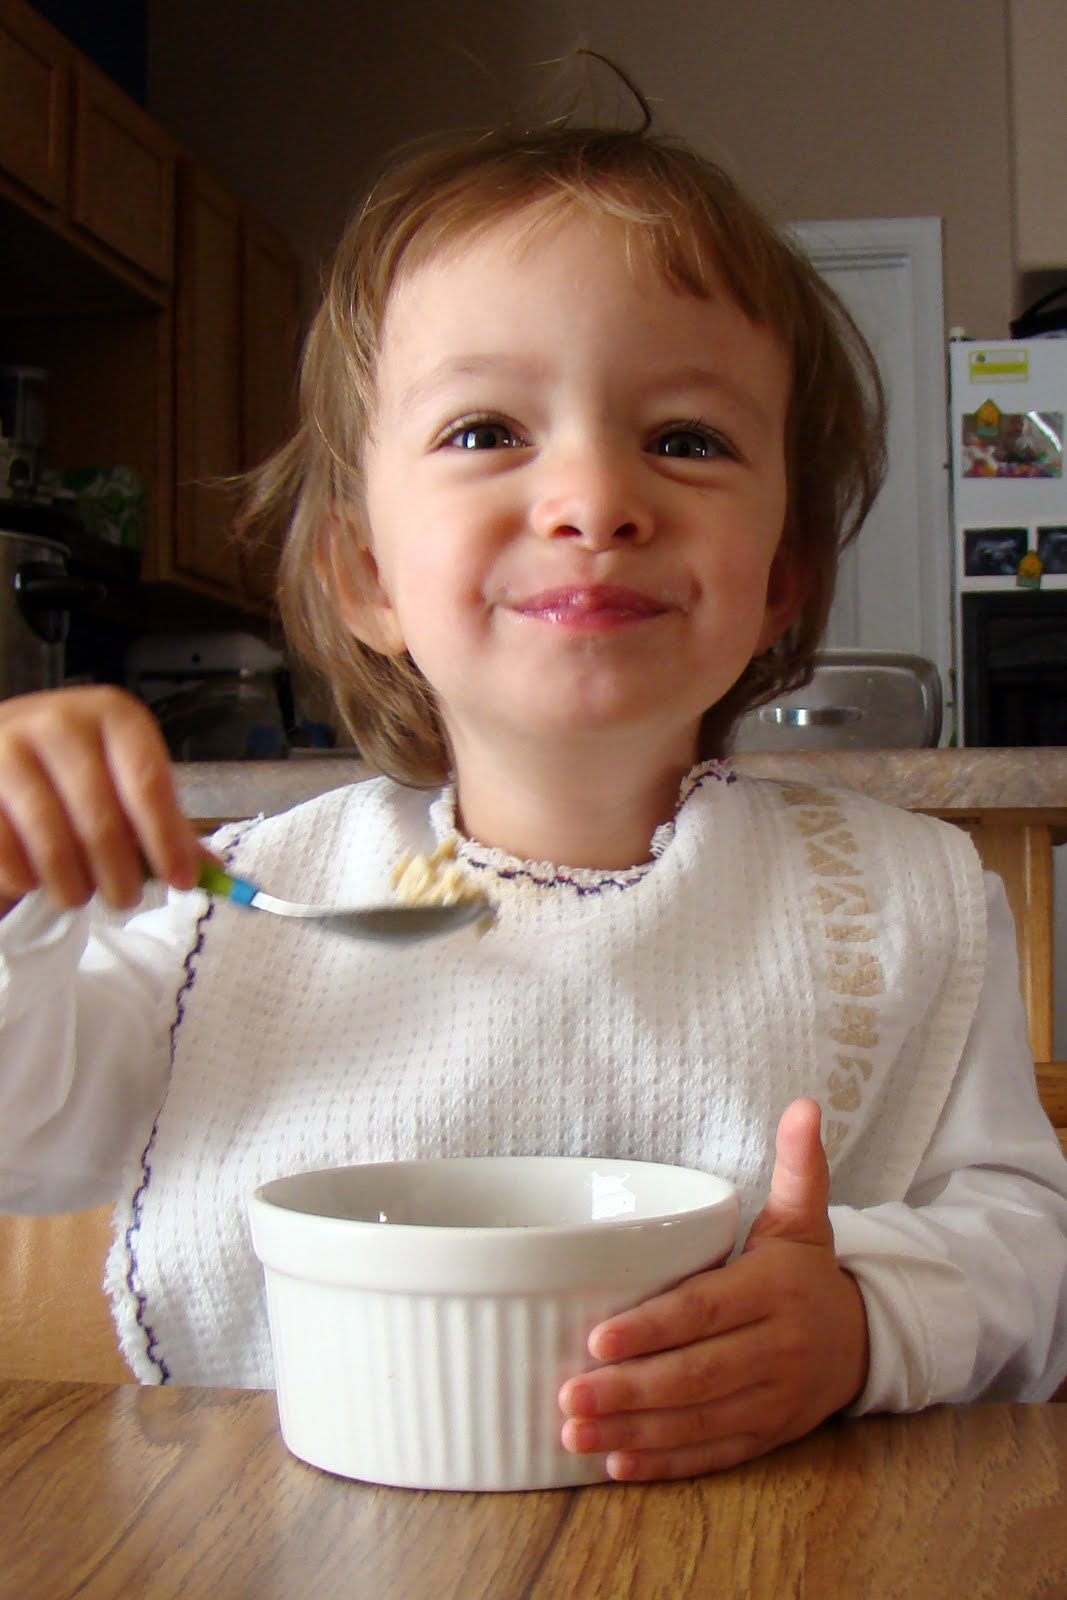 Nourished and Nurtured: Nourish Your Children With Real Foods